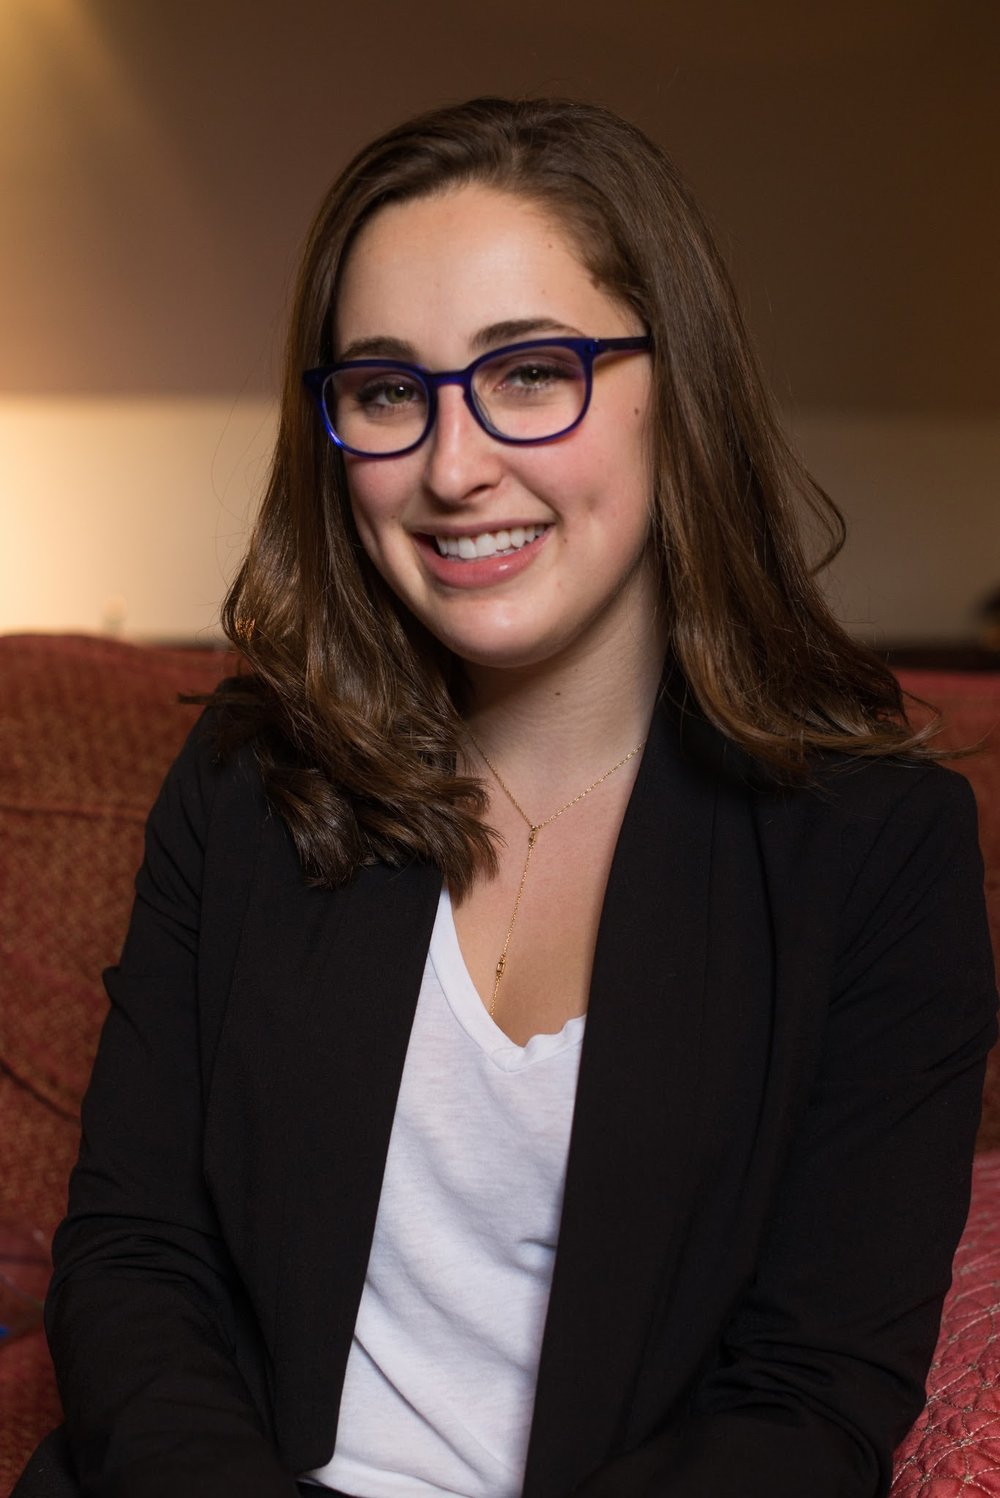 Alana Steinberg '18, Consulting Project Manager